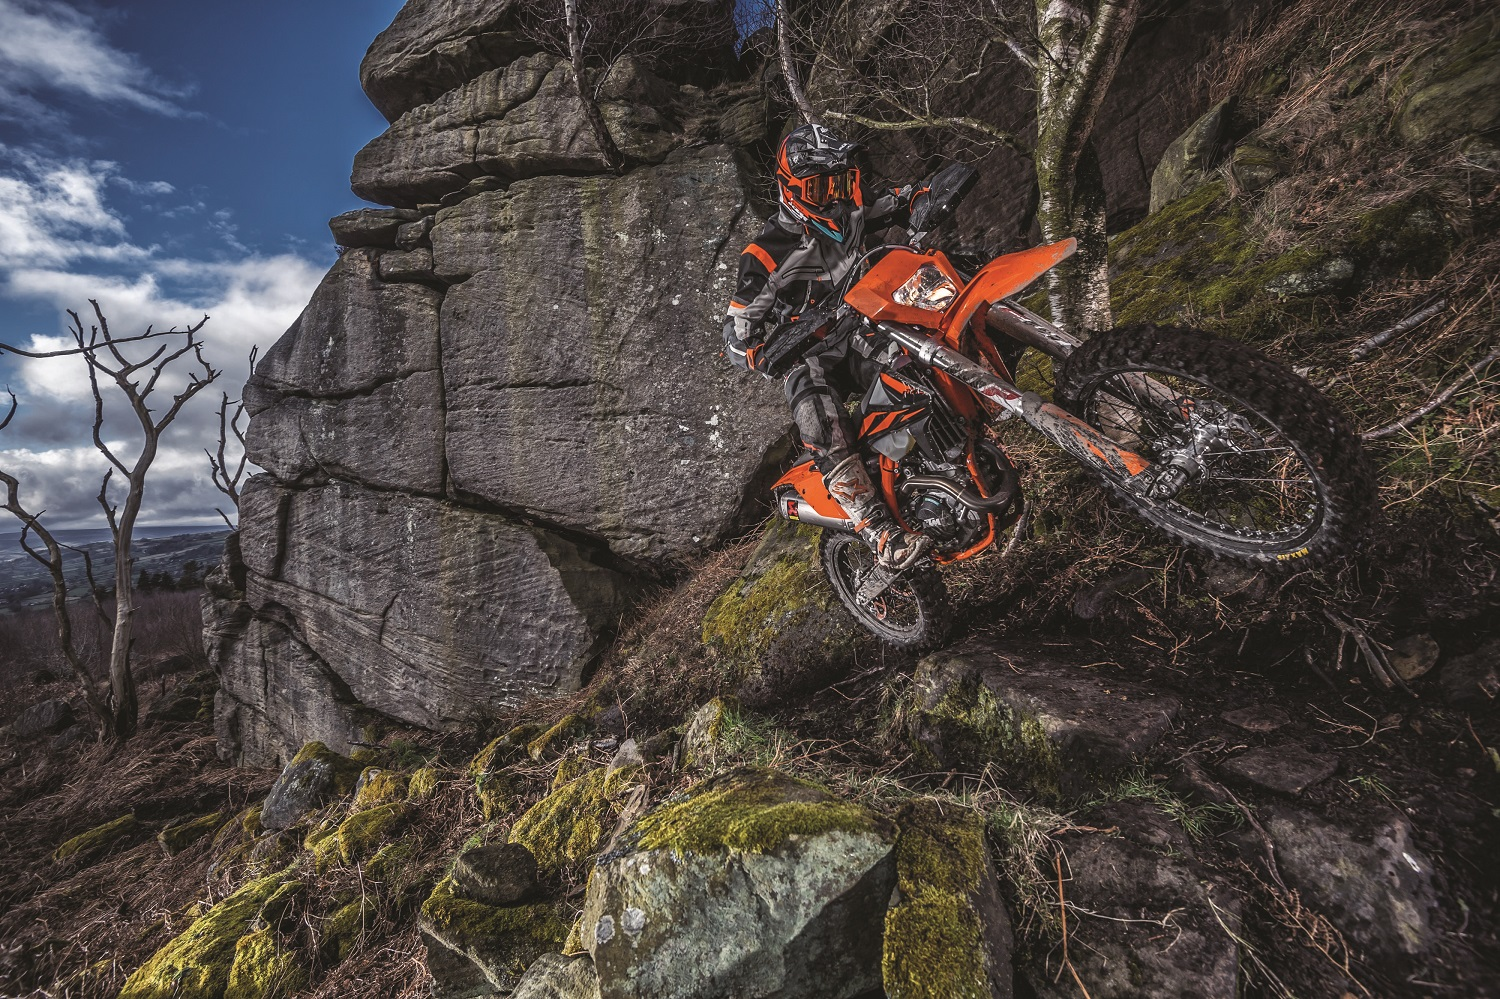 02_Action_KTM 450 EXC-F MY2019